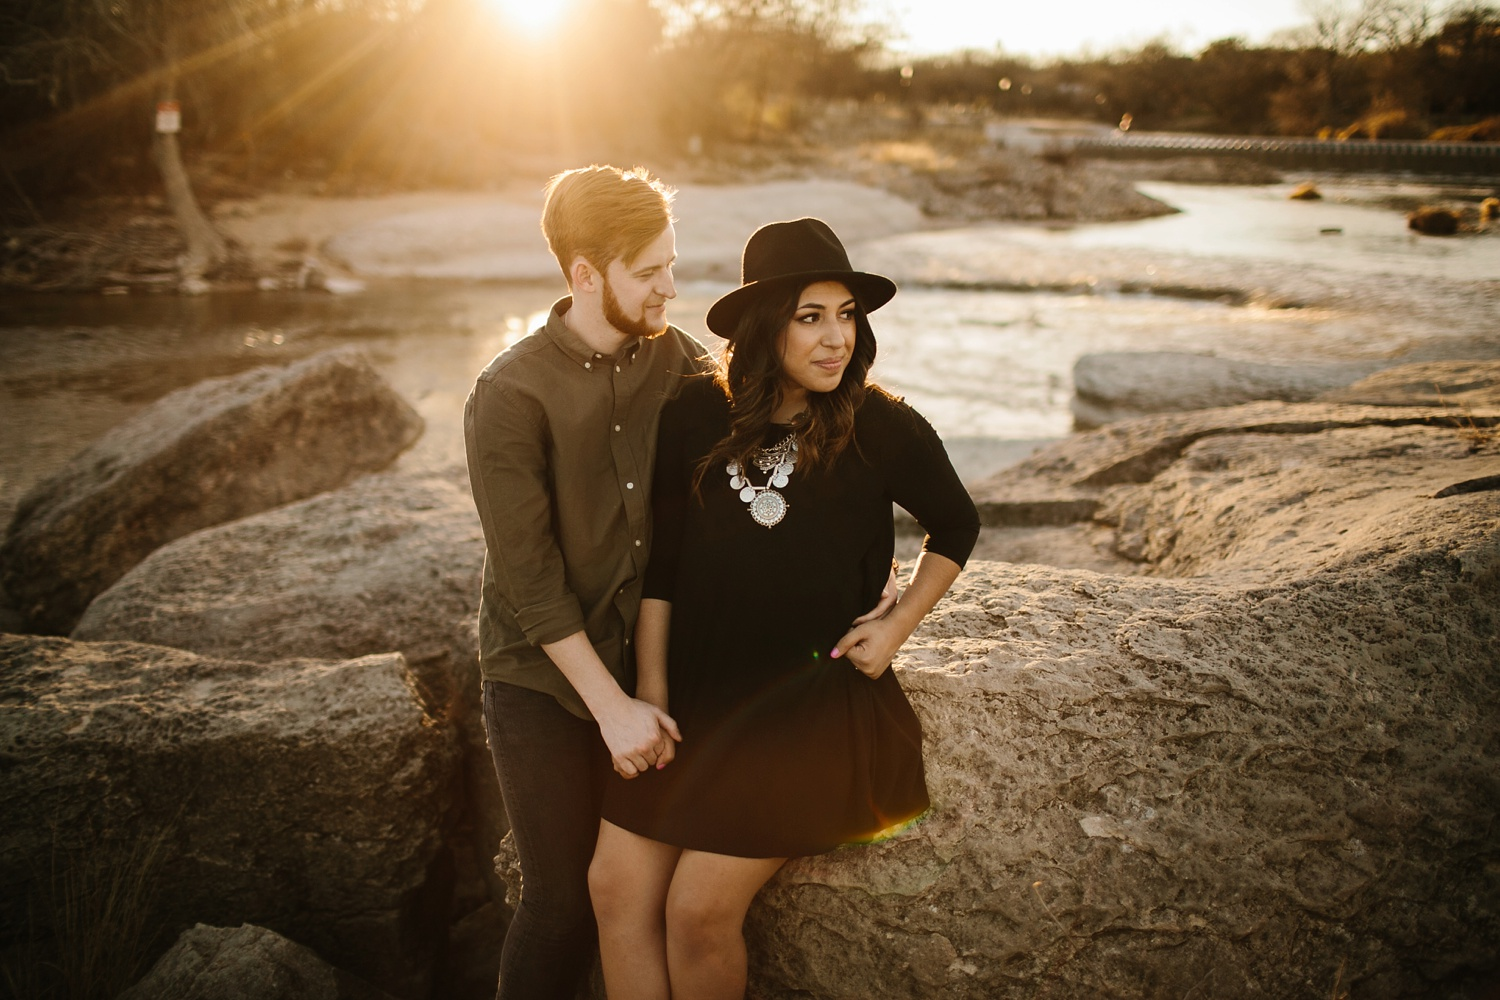 Grant + Lysette - floral dress engagement session by North Texas Wedding Photographer Rachel Meagan Photography066